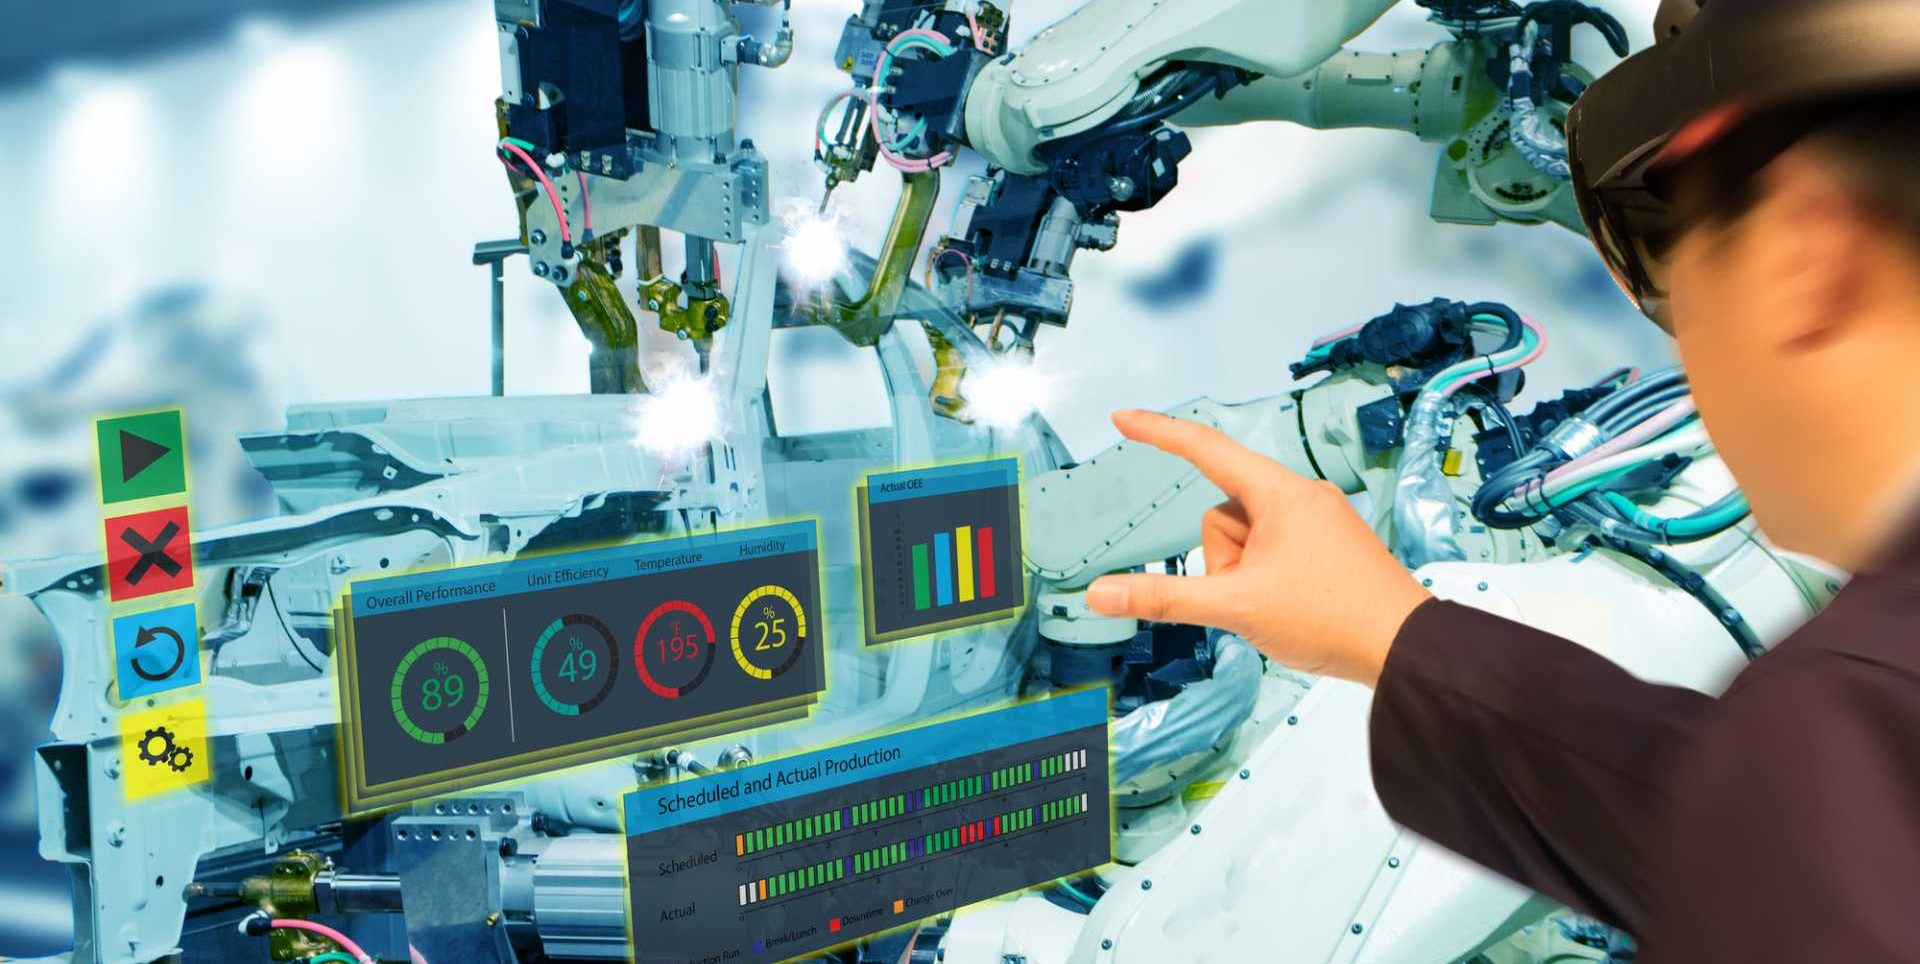 4IR Iot industry 4.0 concept,industrial engineer using smart glasses with augmented mixed with virtual reality technology to monitoring machine in real time.Smart factory use Automation robot arm– image courtesy of Depositphotos.